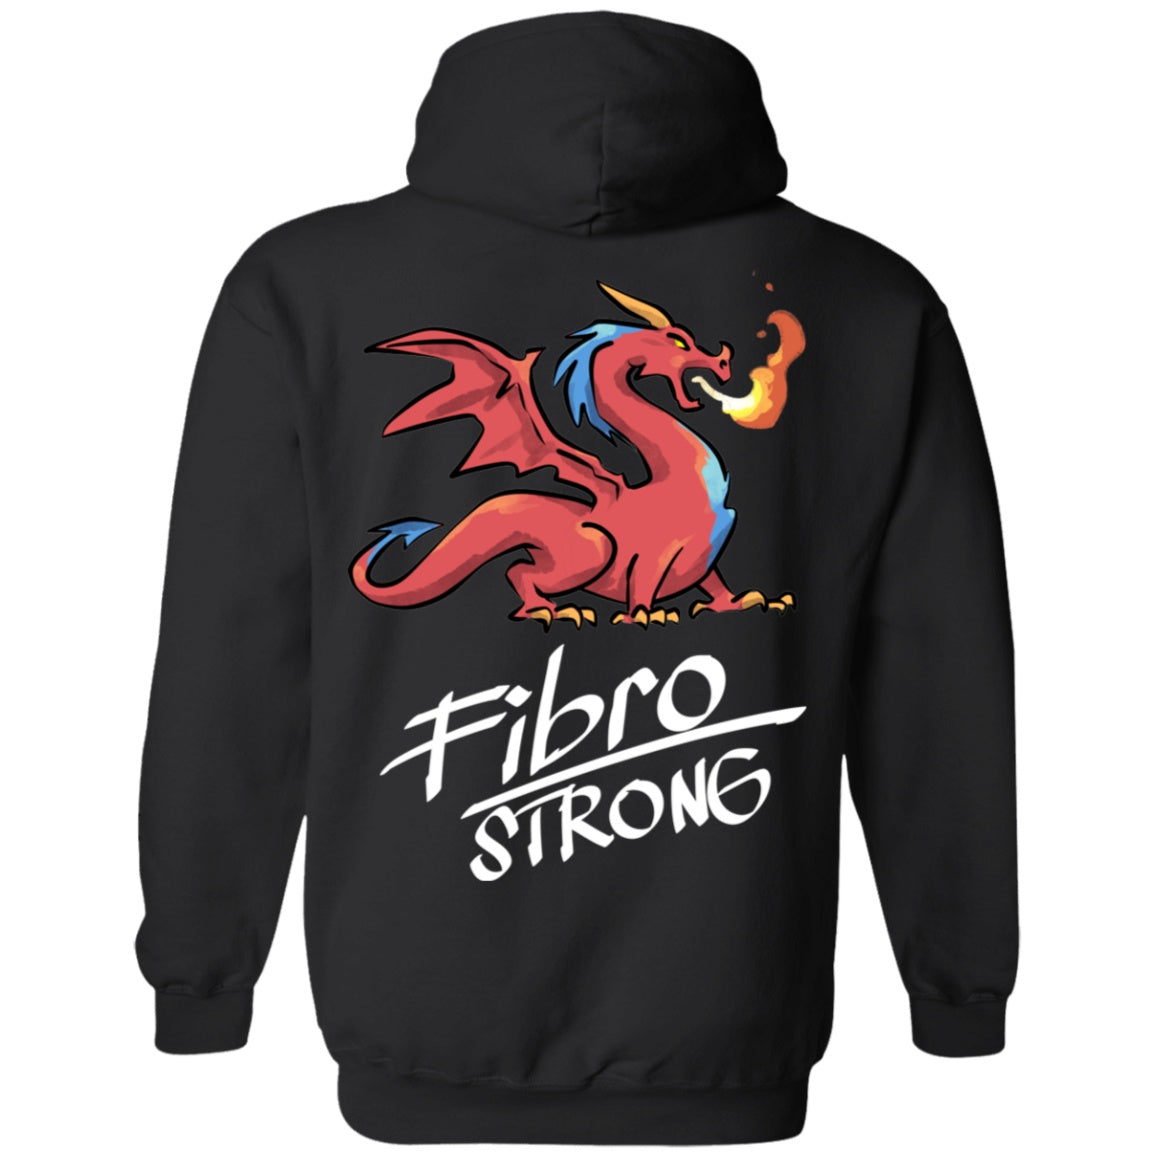 Fibro Strong Dragon (Back Print) Pullover Hoodie 8 oz. - The Unchargeables